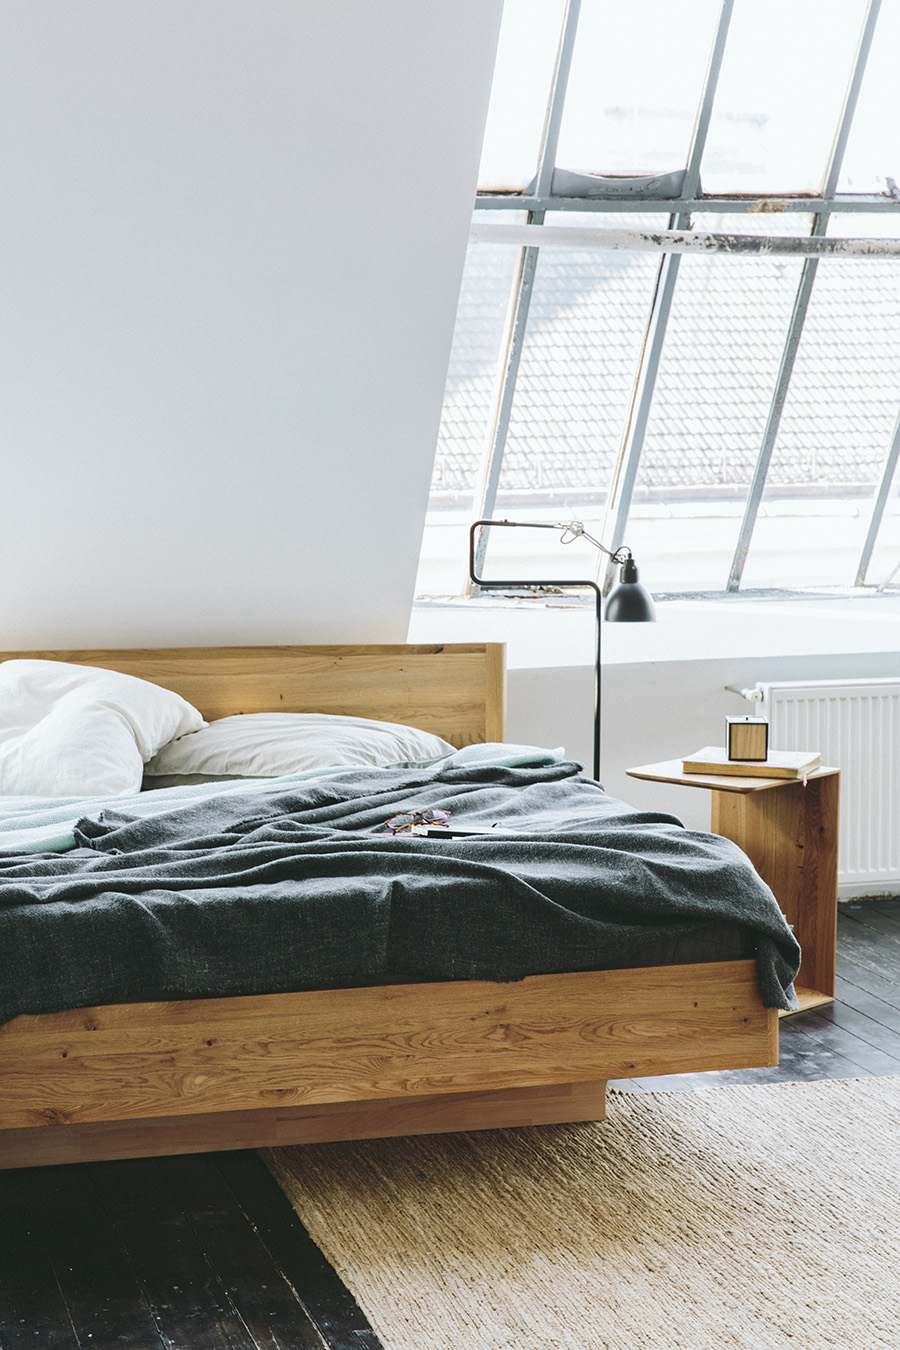 Times Bed_078.jpg